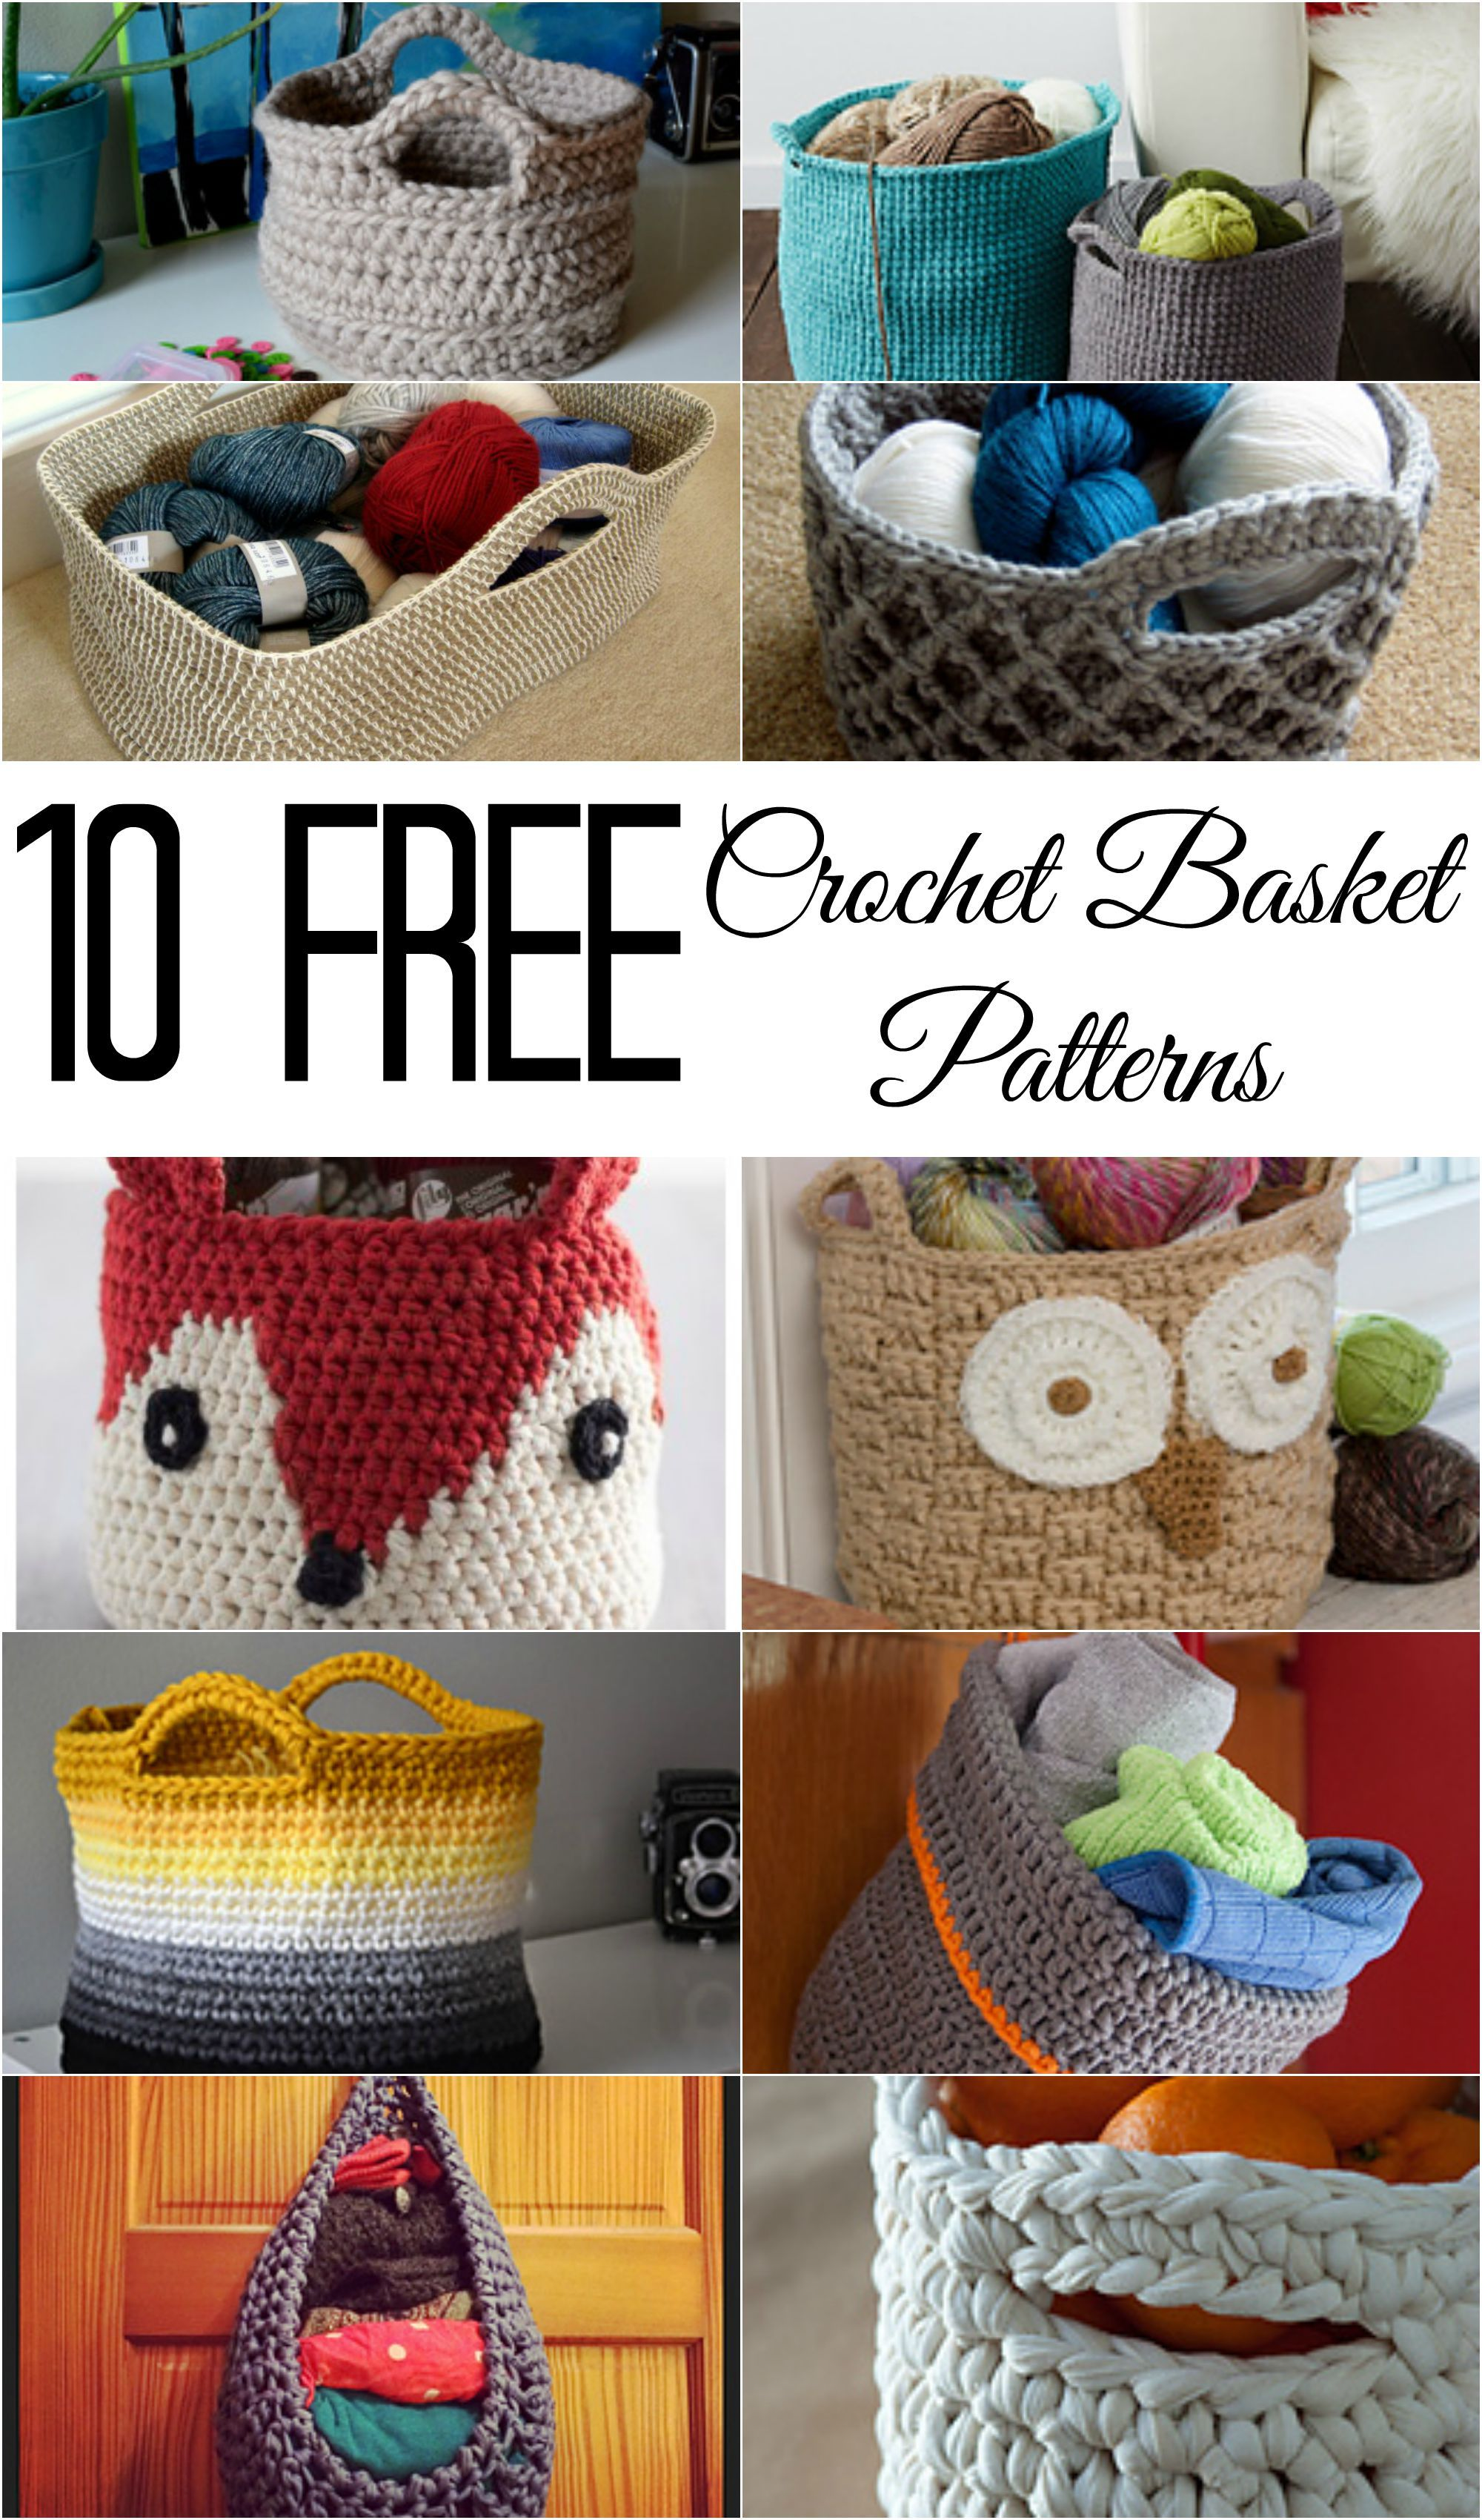 10 Free Crochet Basket Patterns | Knit & Crochet Patterns ...